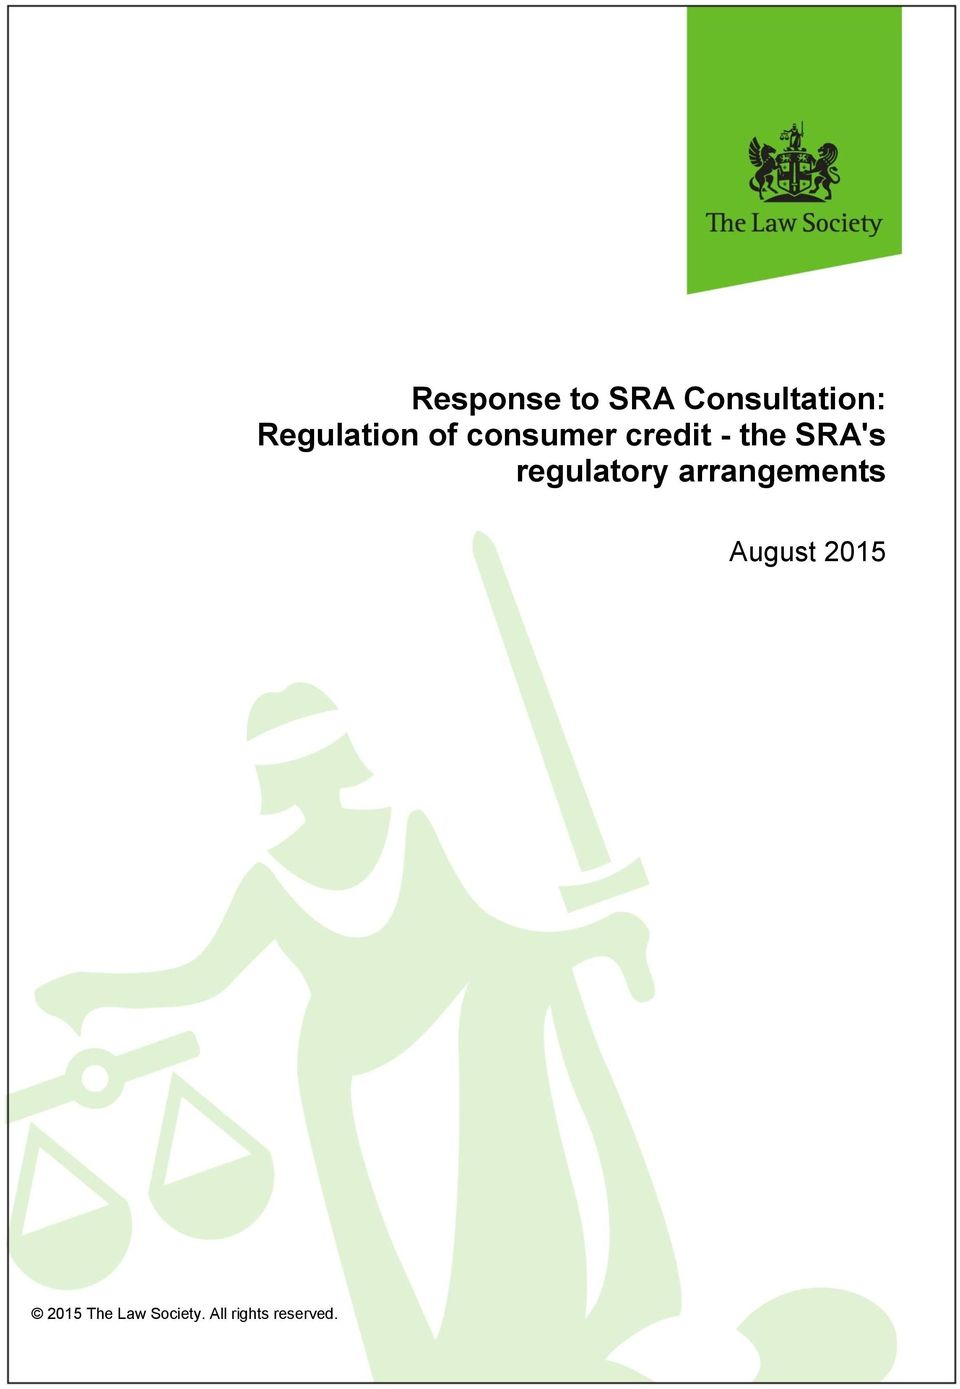 SRA's regulatory arrangements August